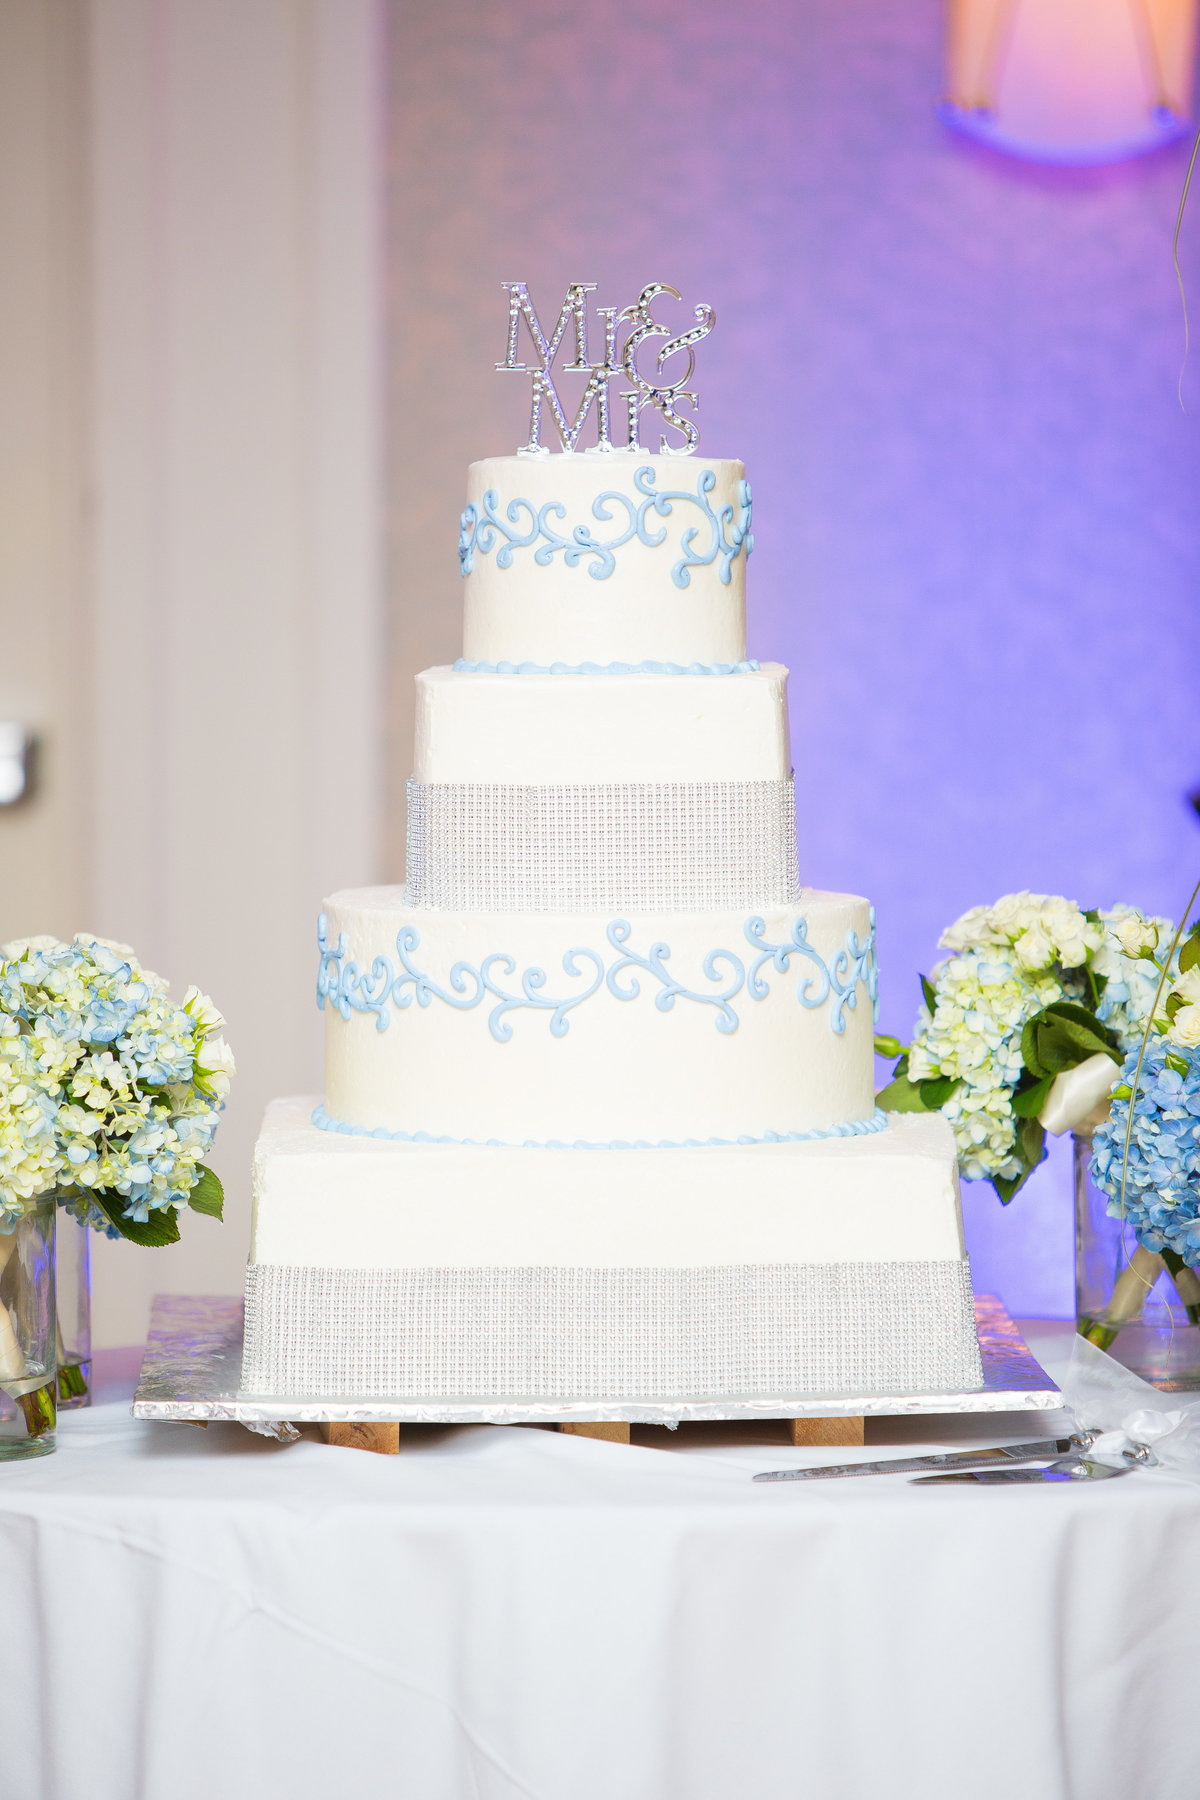 79 wedding photography cake-4